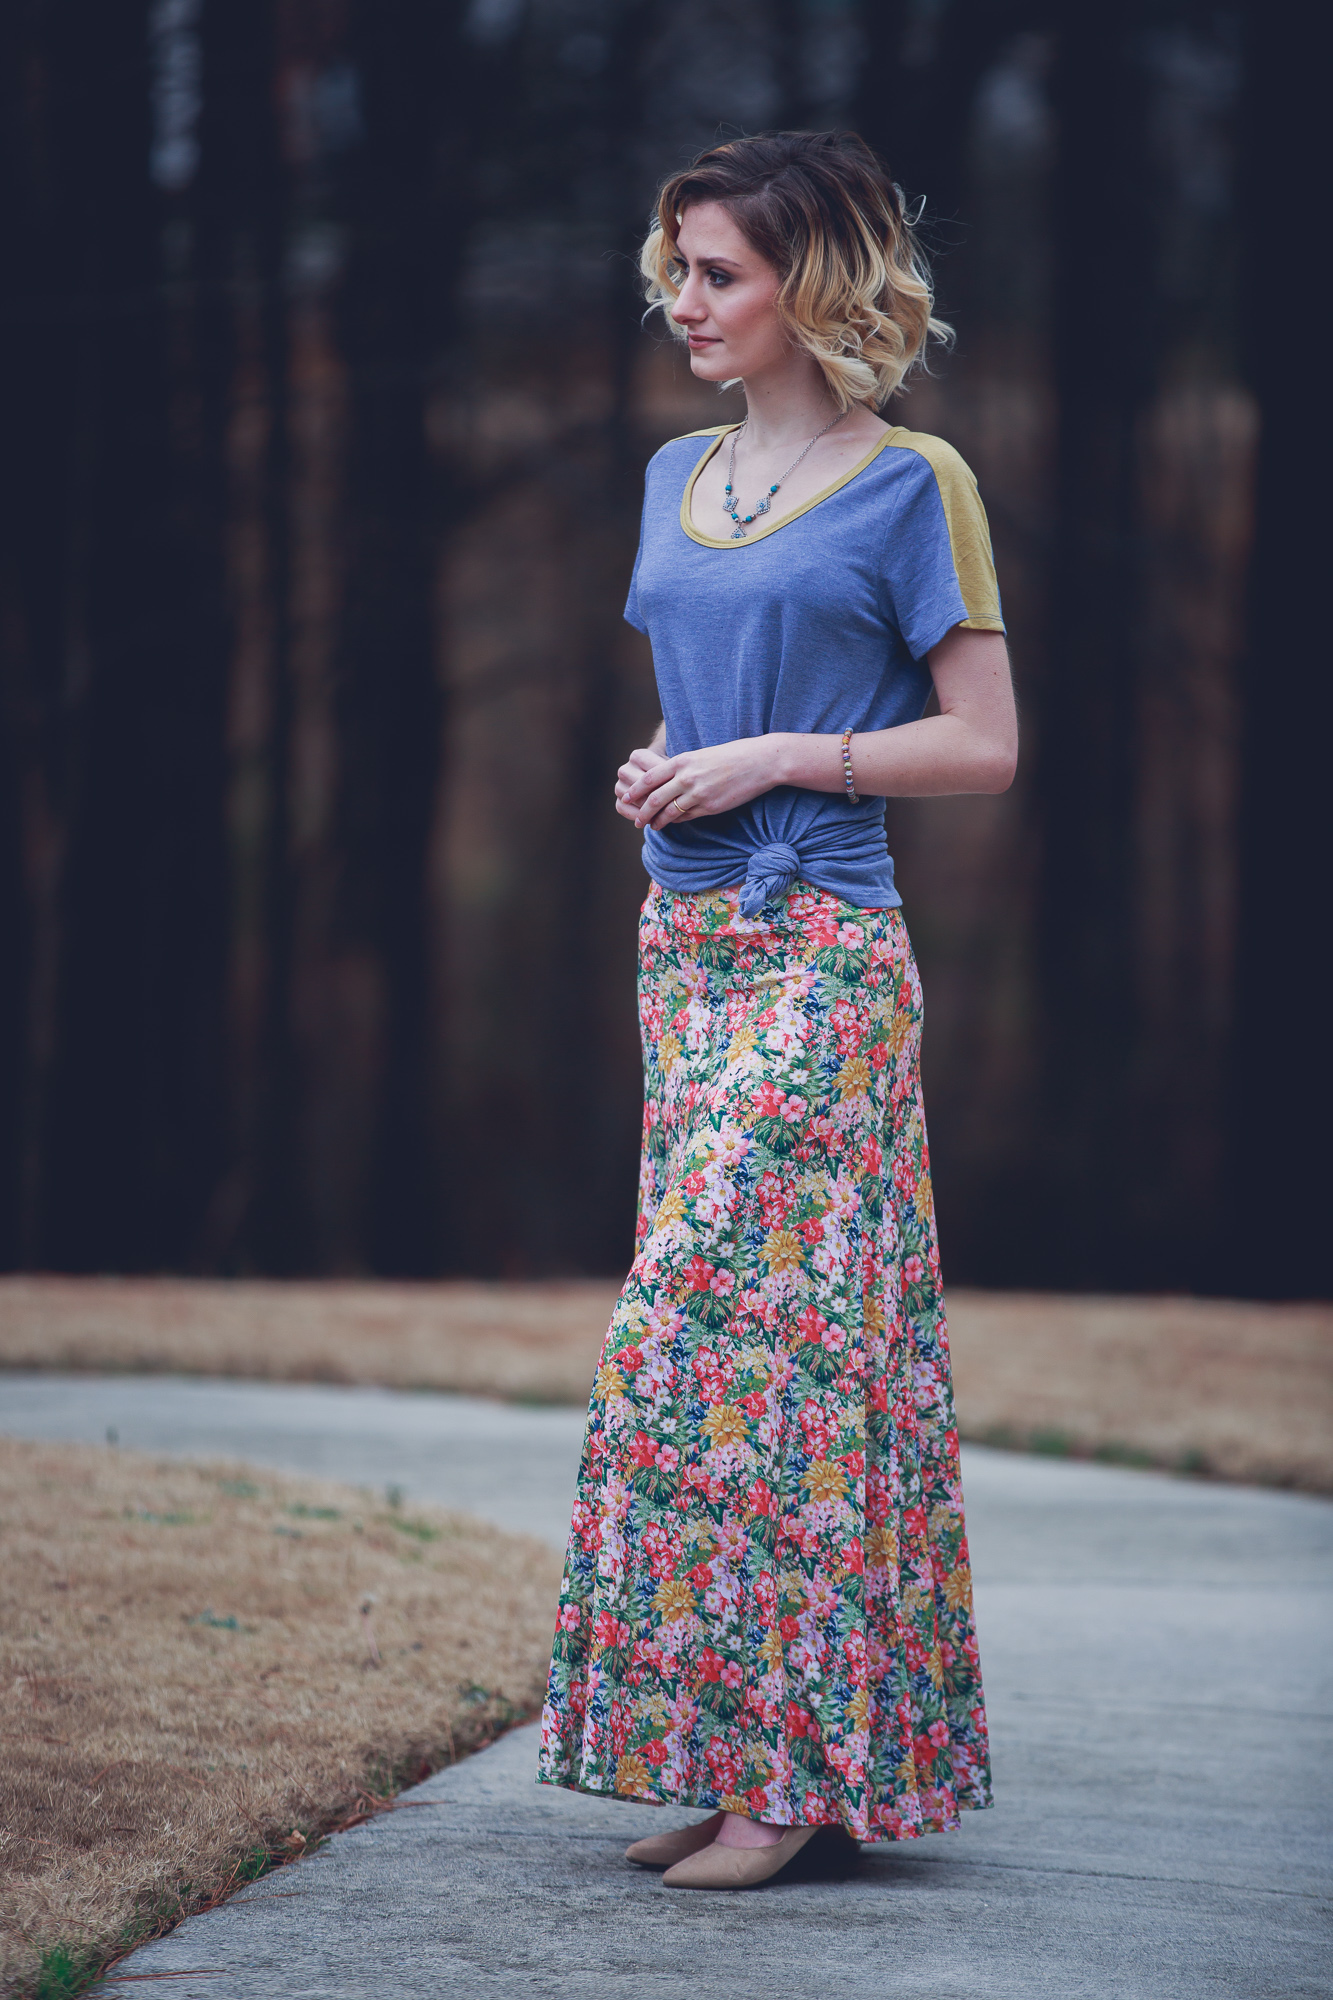 Fashion blog photo of Jessica Linn wearing a maxi shirt and tee shirt from Lula Roe Life by Angela Lange